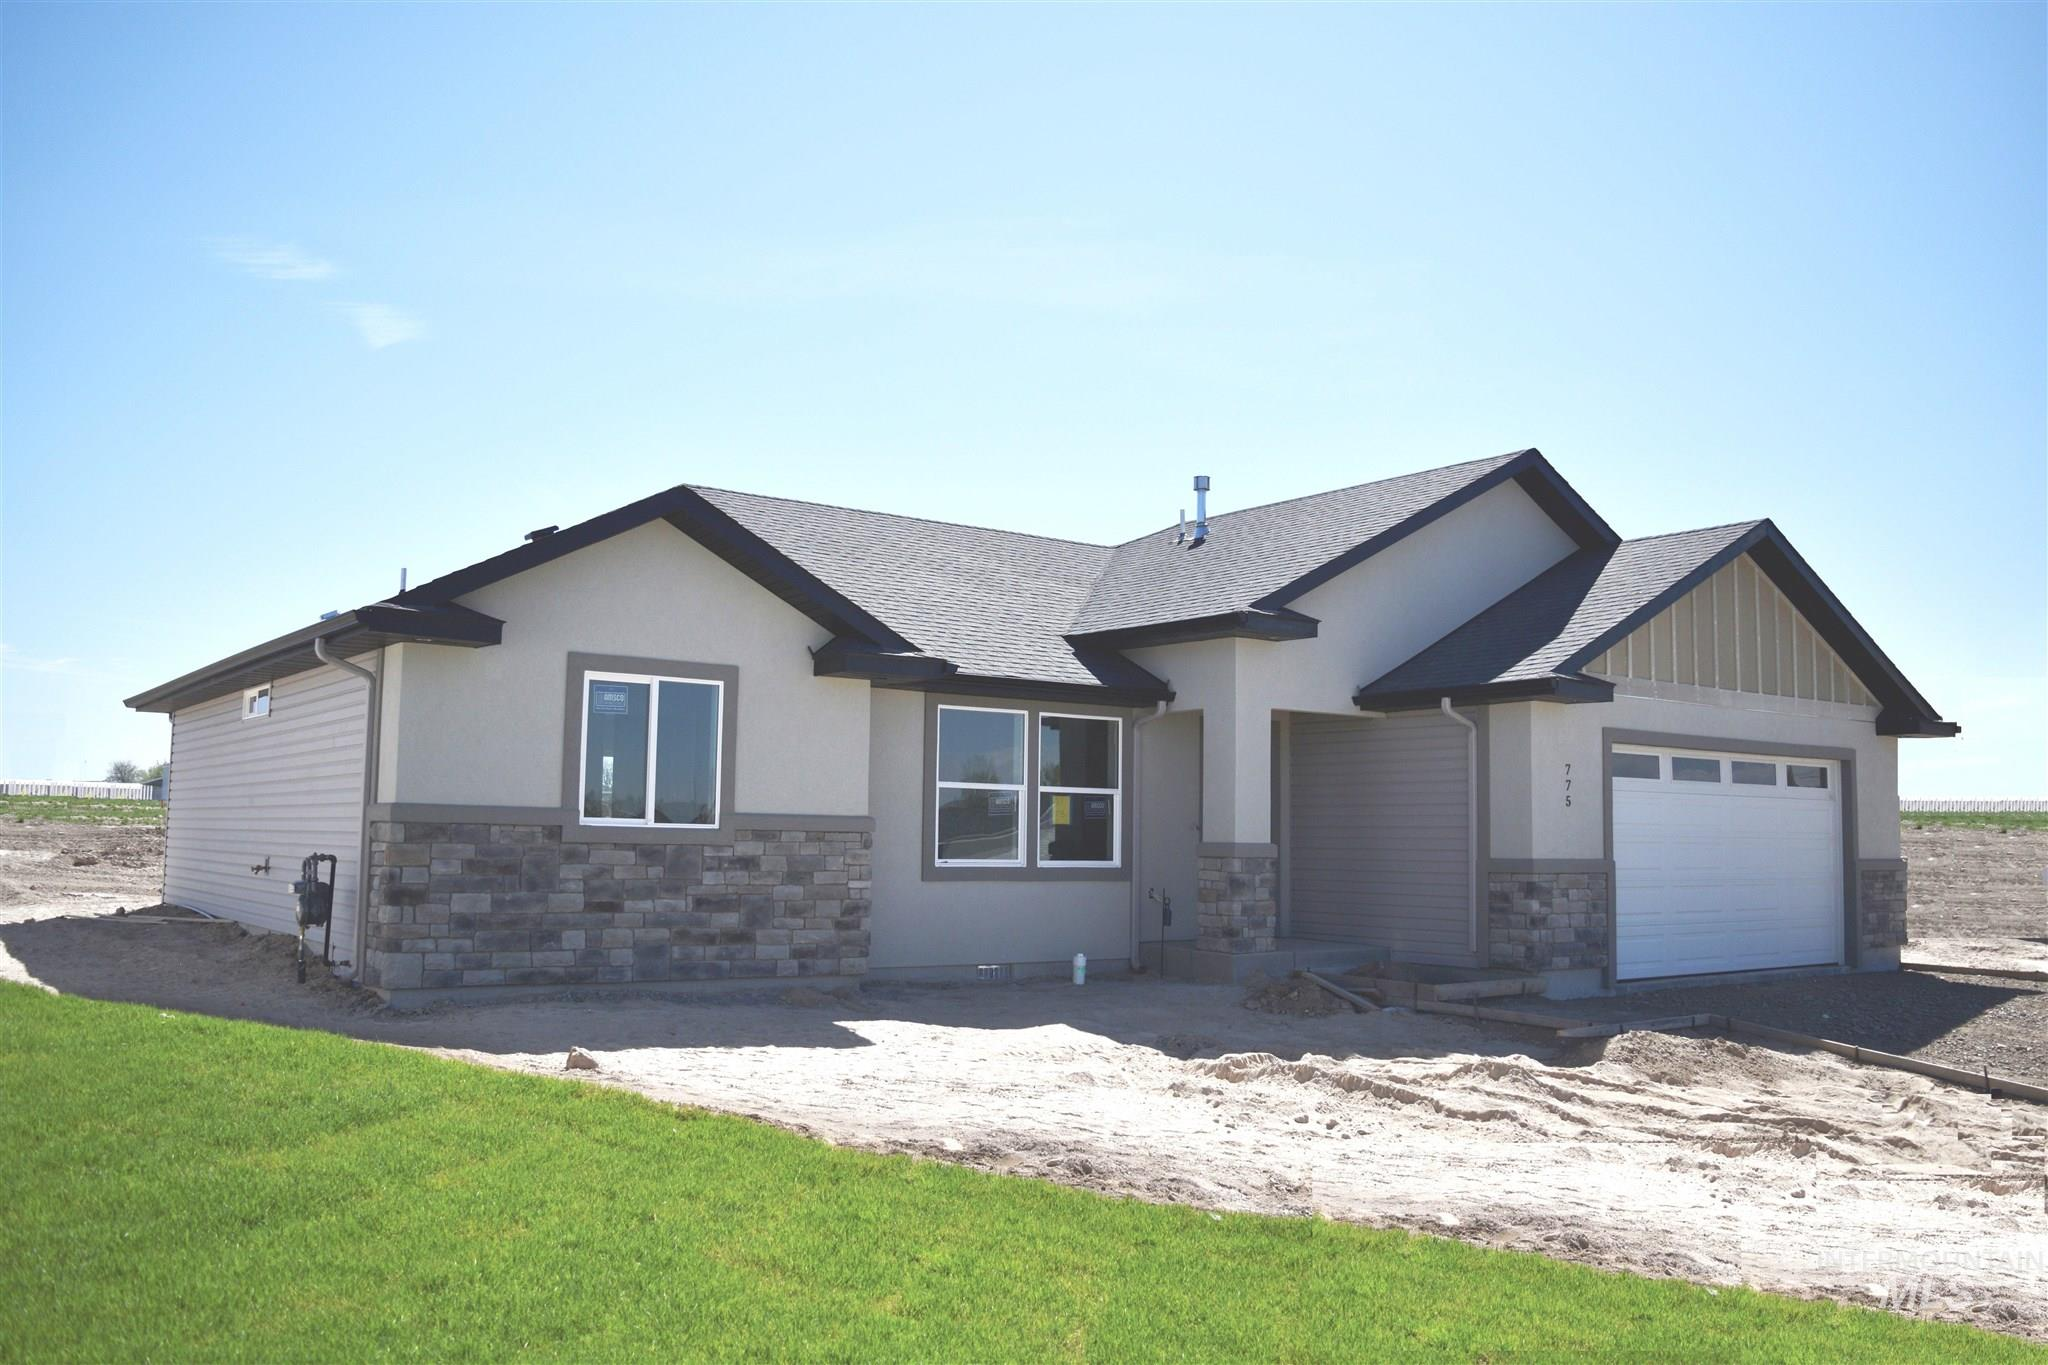 775 Sunnyridge Court East Property Photo - Kimberly, ID real estate listing